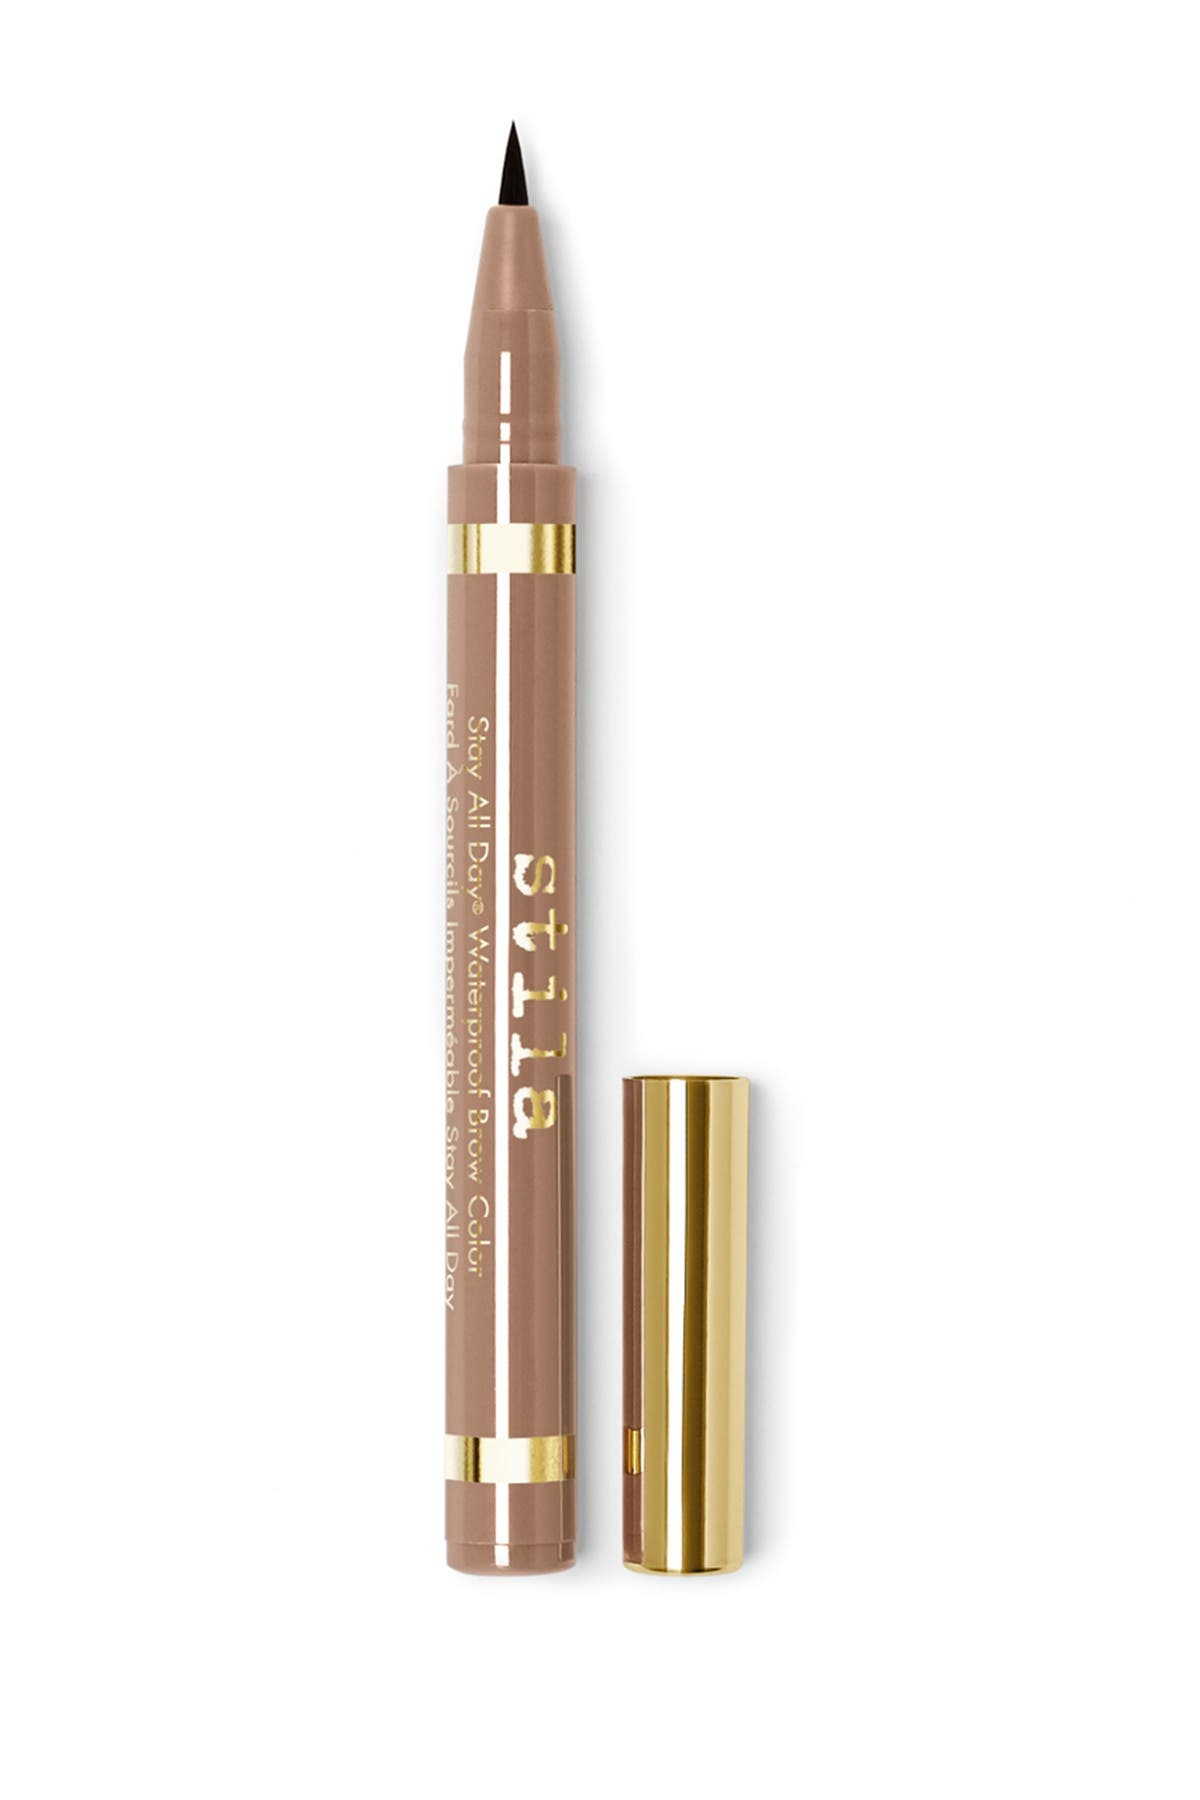 Image of Stila Stay All Day(R) Waterproof Brow Color - Light Ash